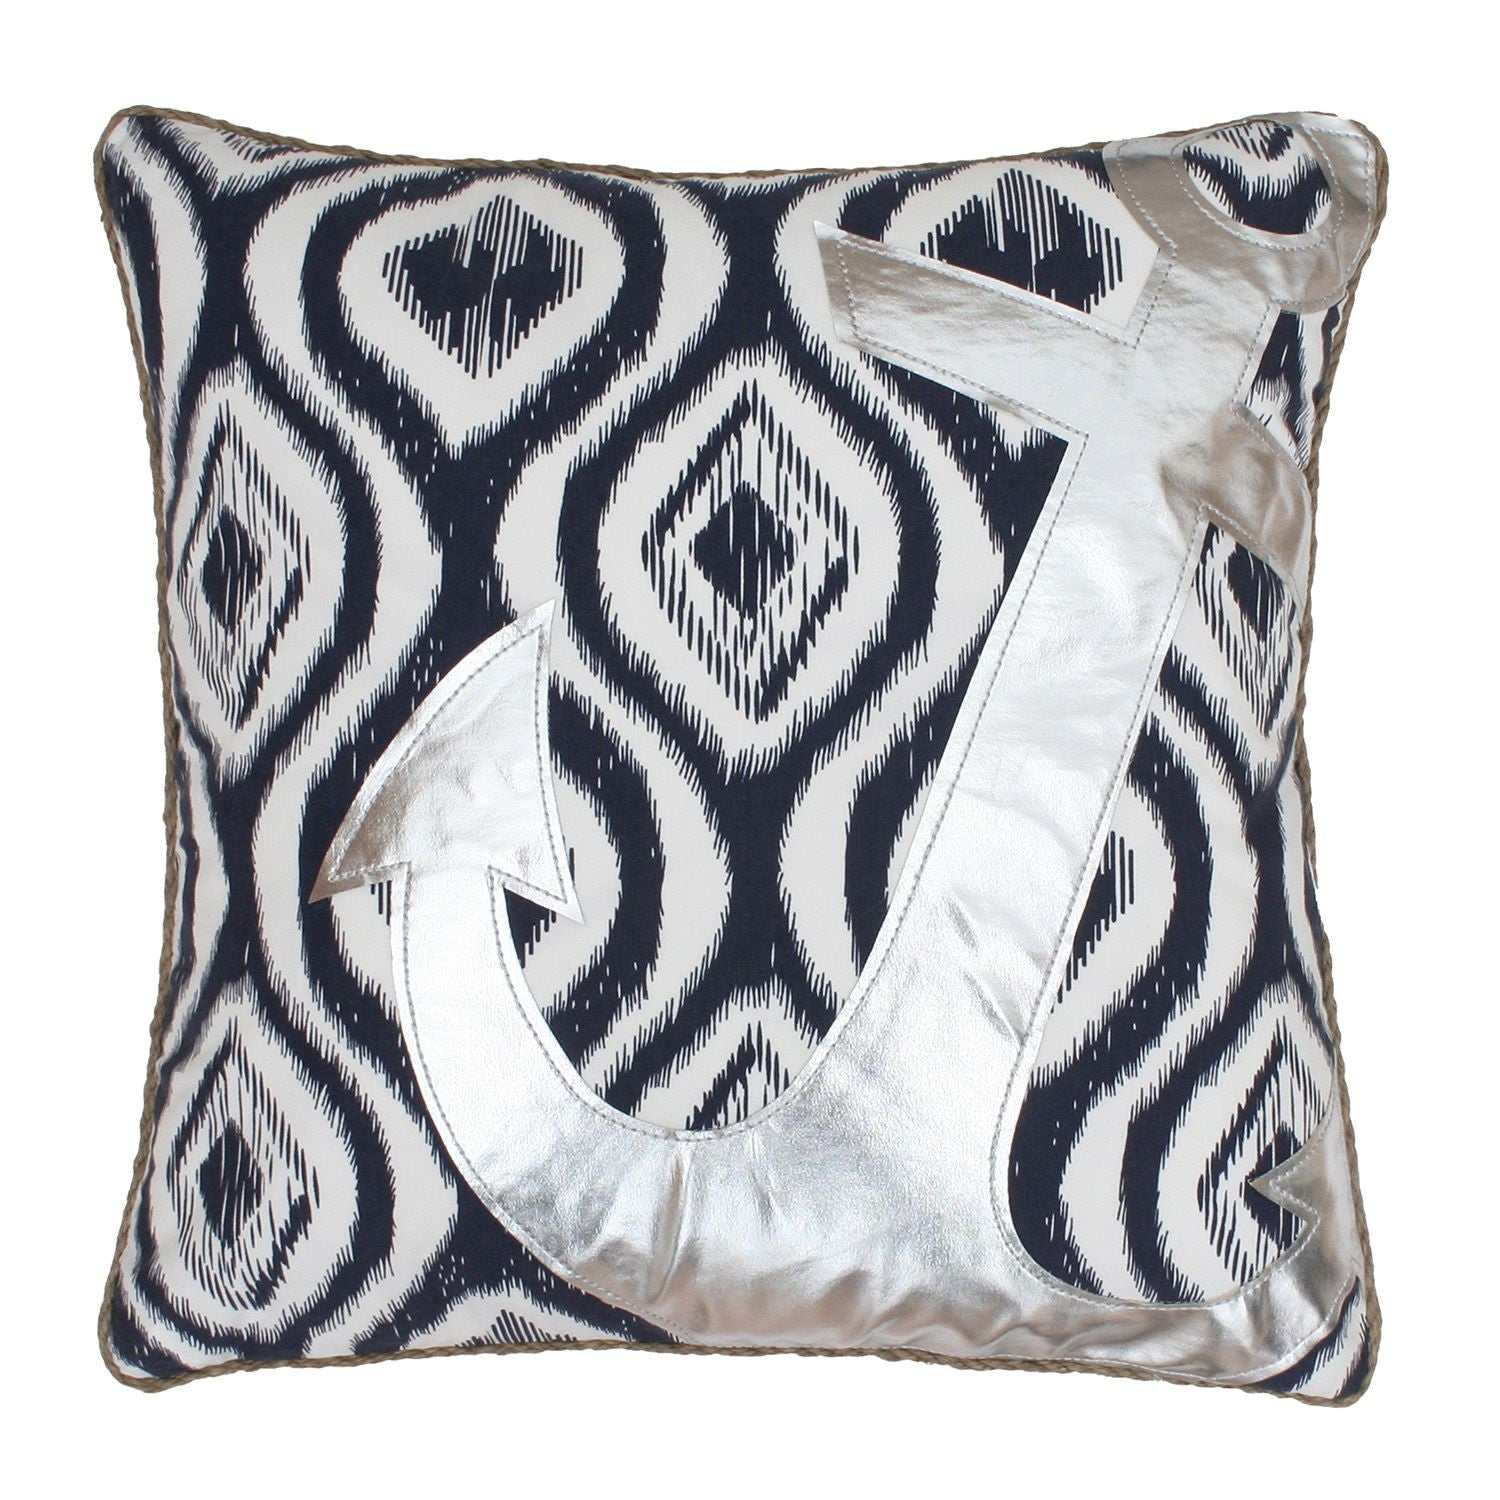 Ali Anchor Applique Pillow